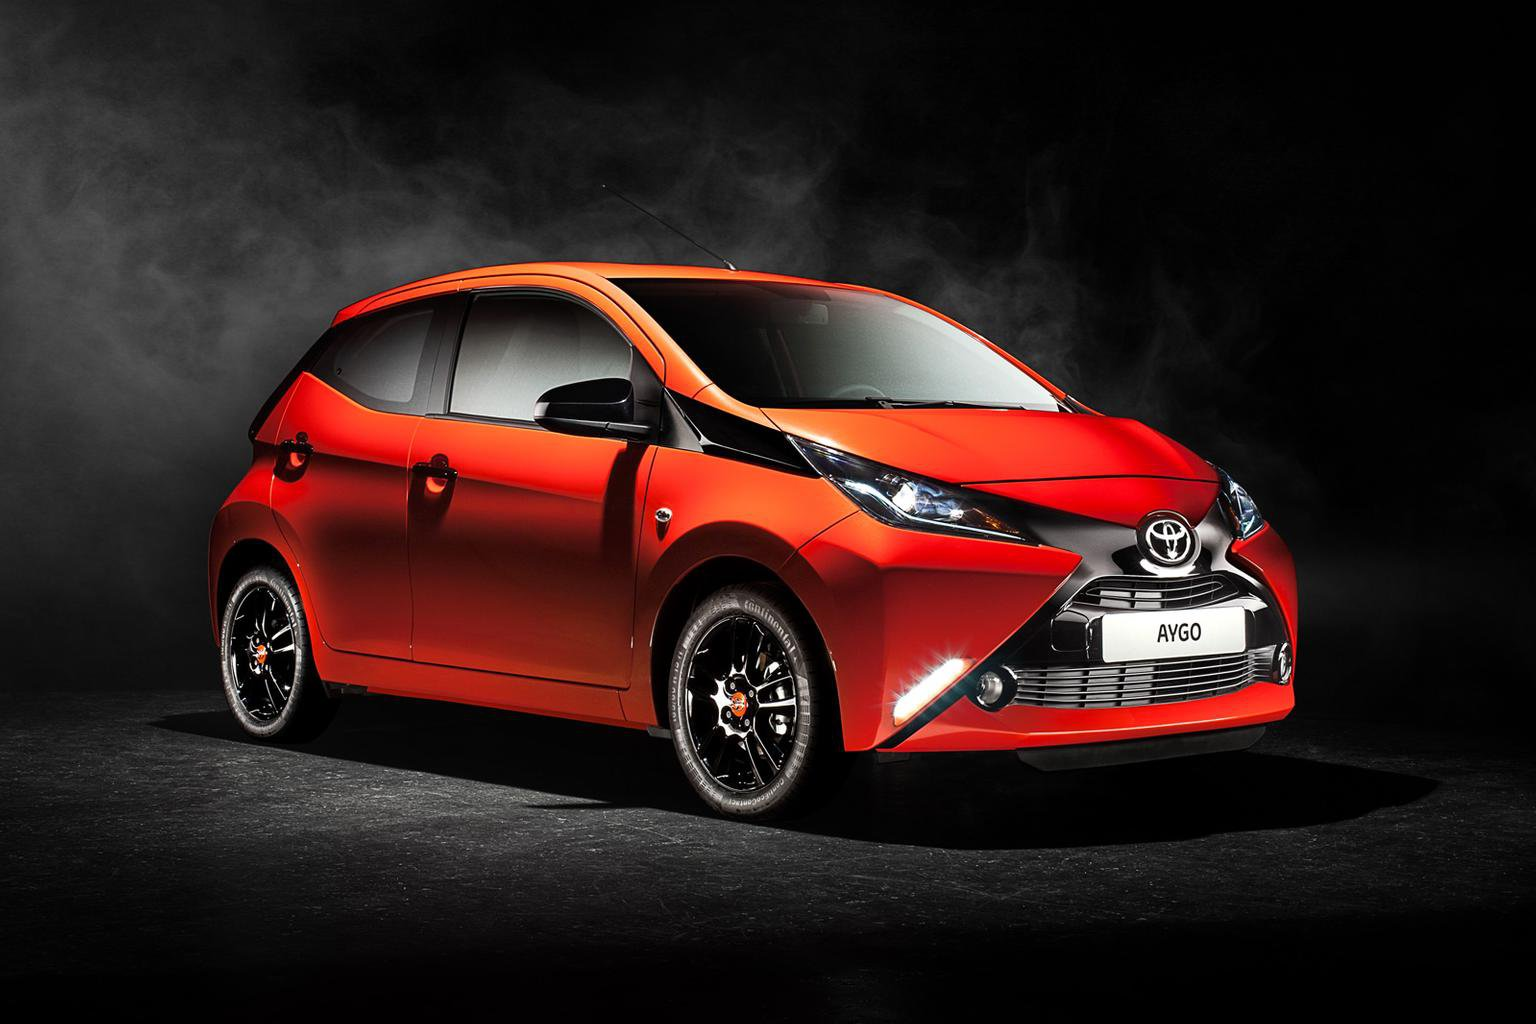 2014 Toyota Aygo revealed